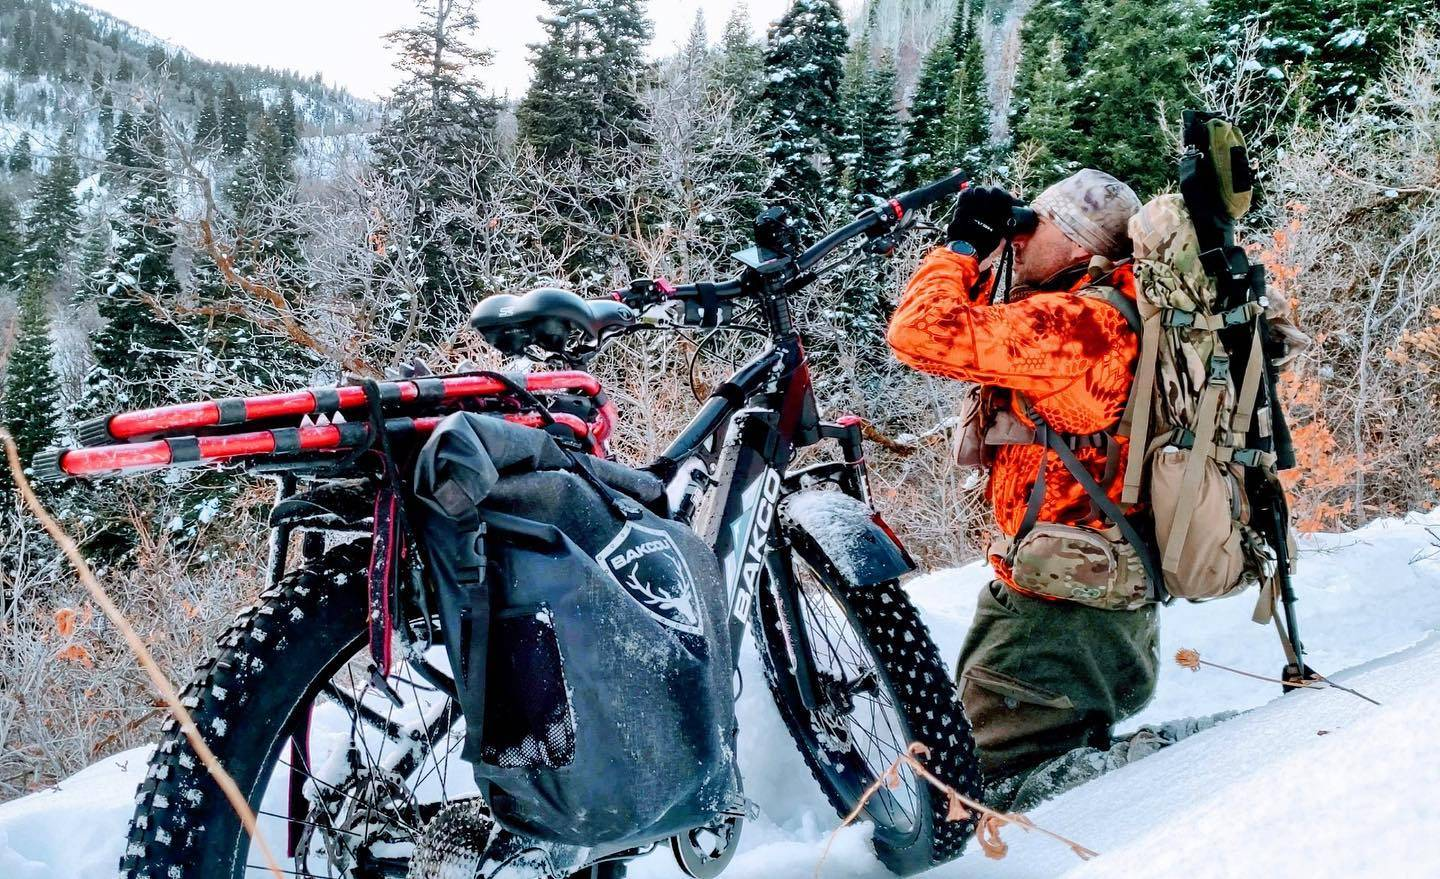 Bakcou Storm eBike Overview Top 7 Features for Hunters